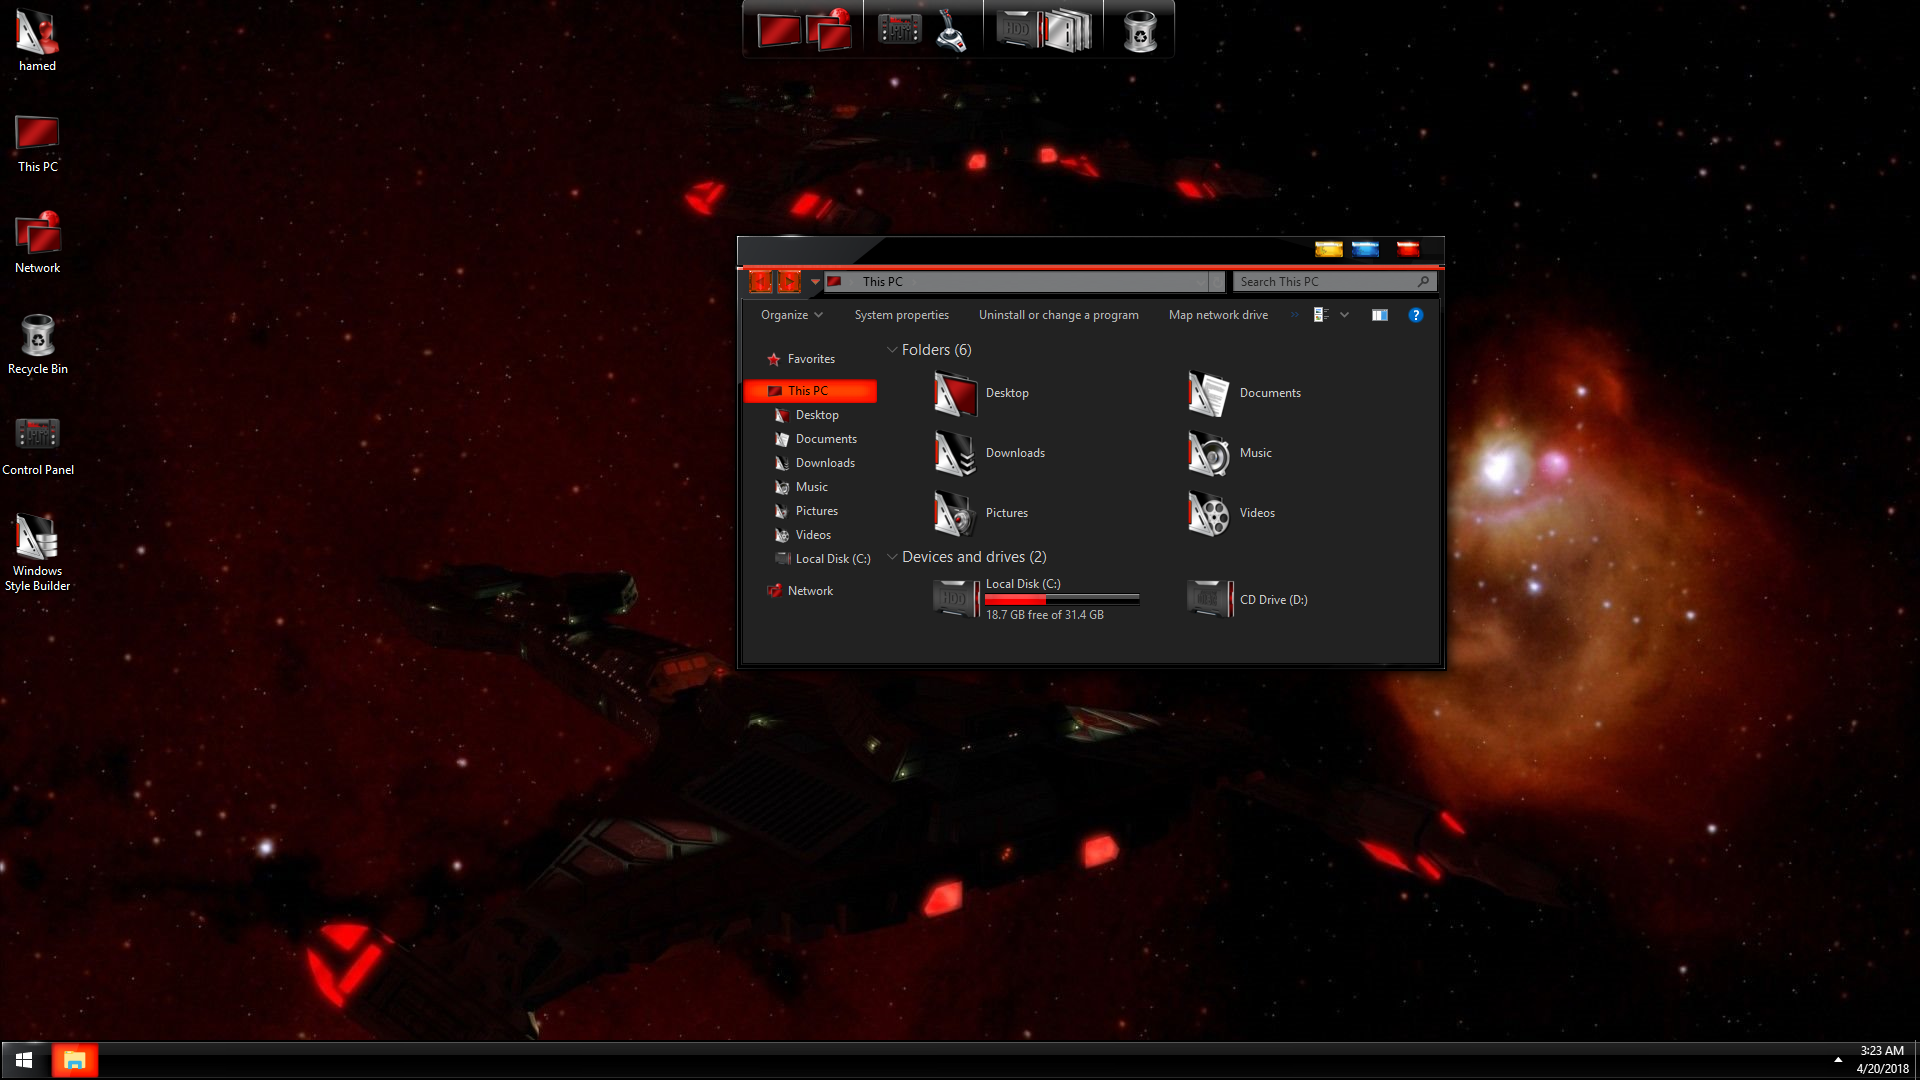 StarTrek Black Red SkinPack for Windows 7\10